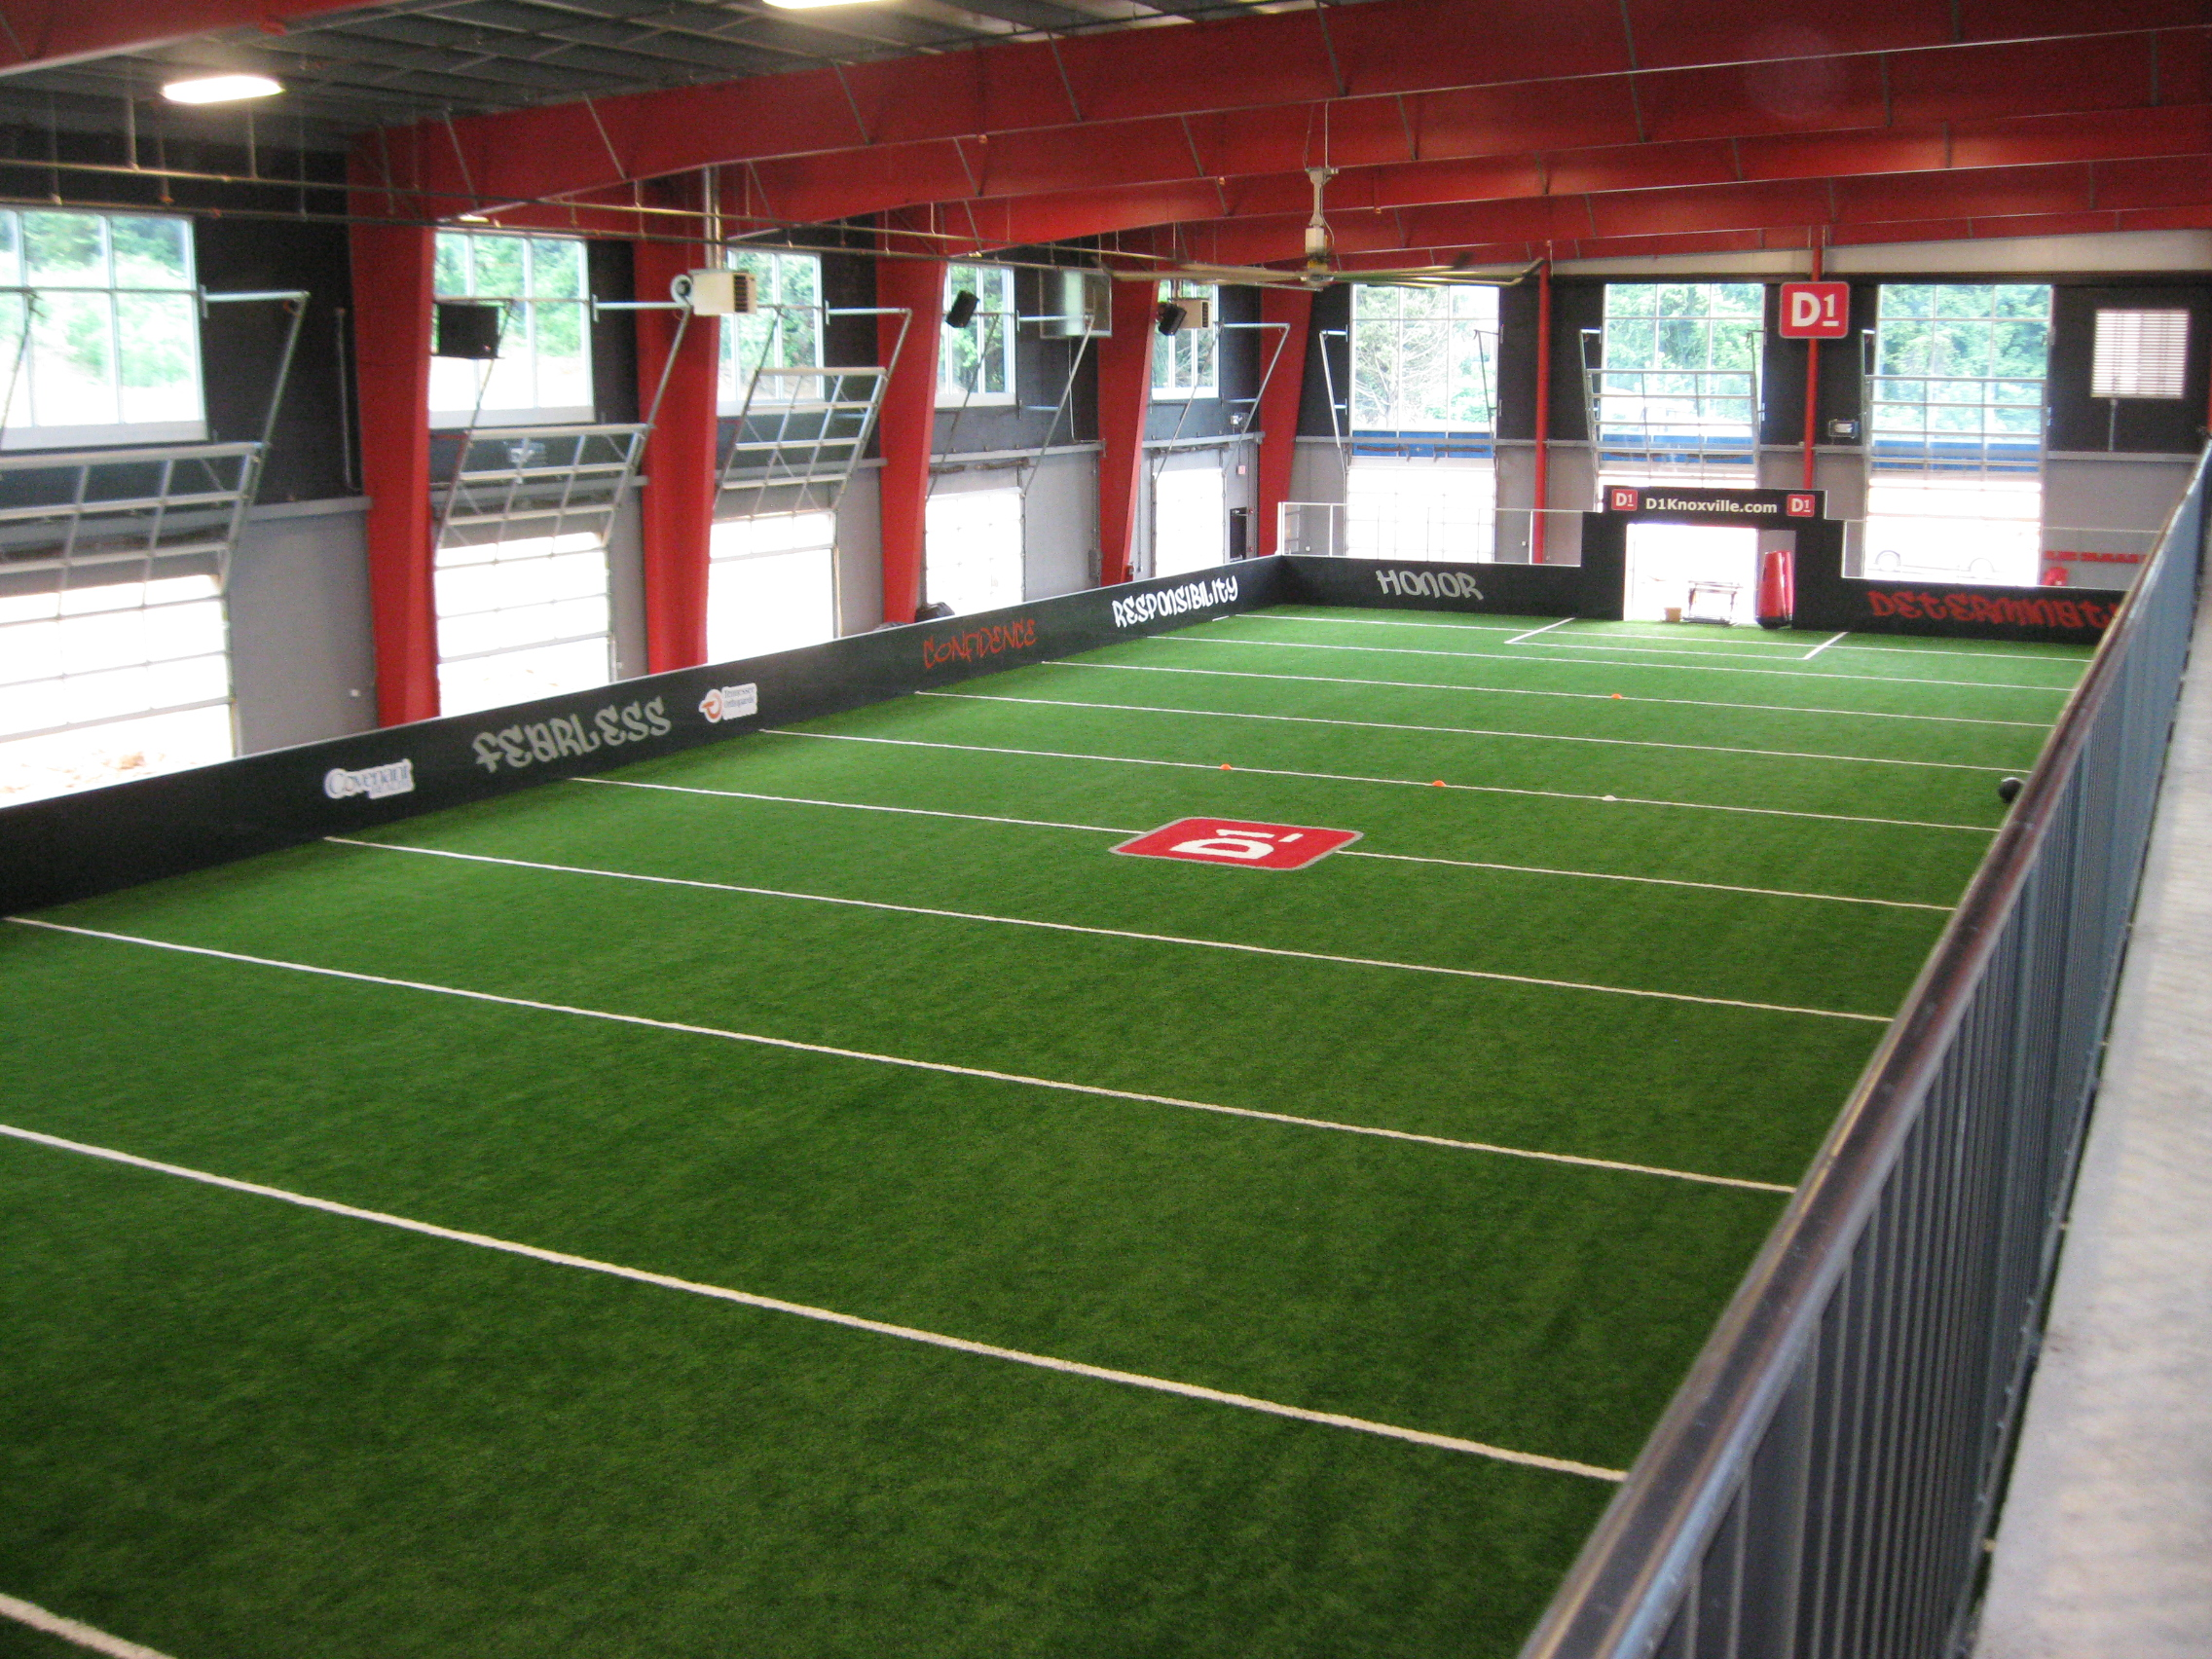 D1 fitness sports training smith gee studio for Indoor facility design